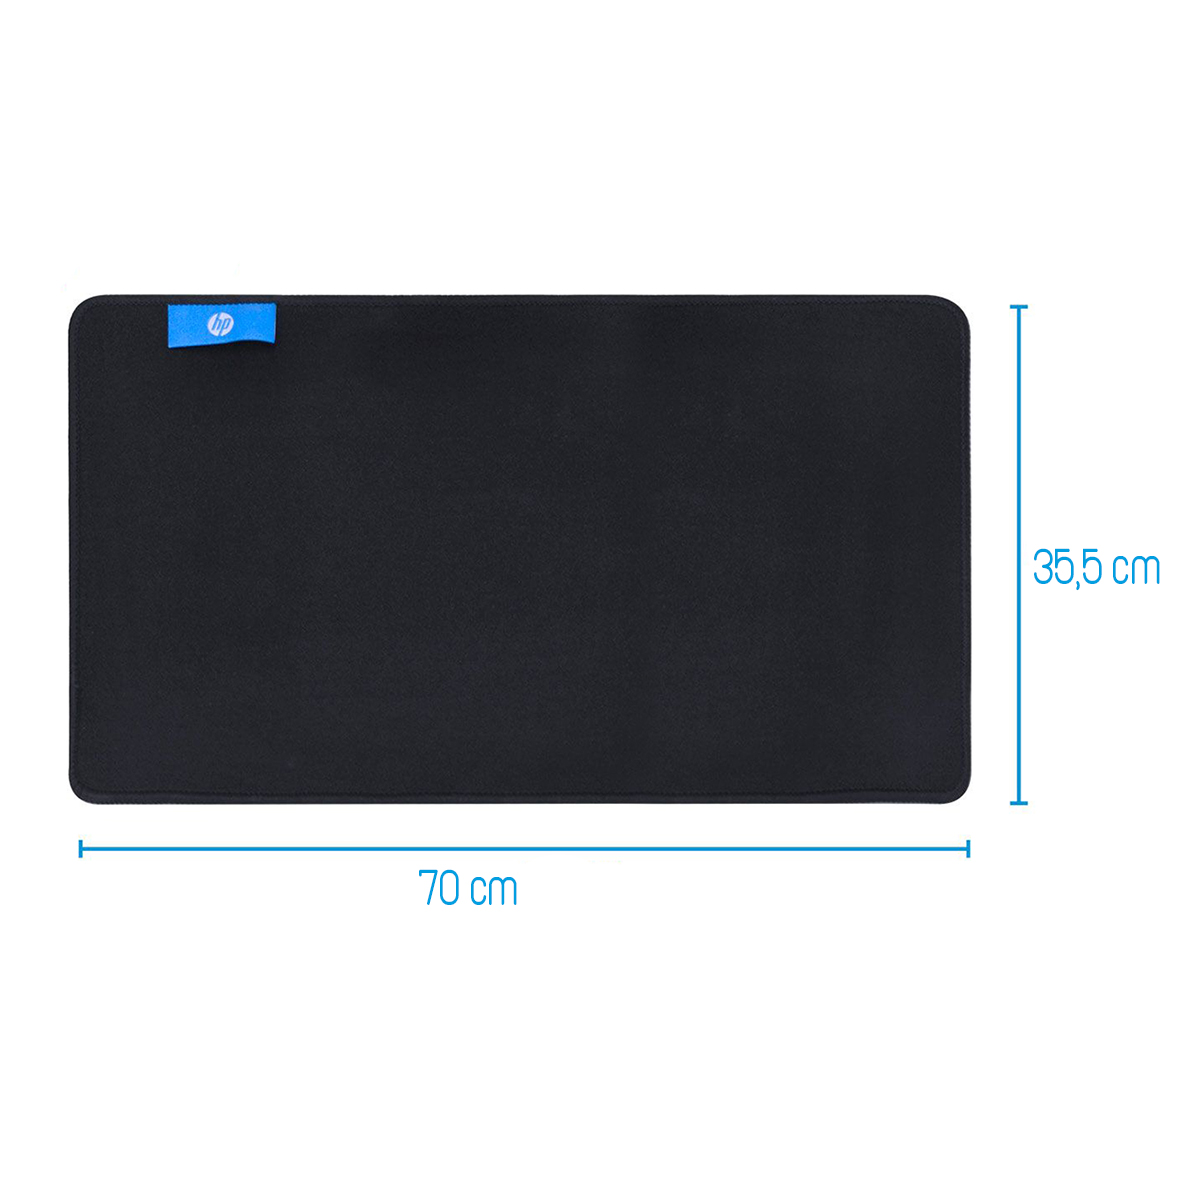 Mouse PAD Gamer Grande 70 x 35cm HP MP7035 Exclusivo